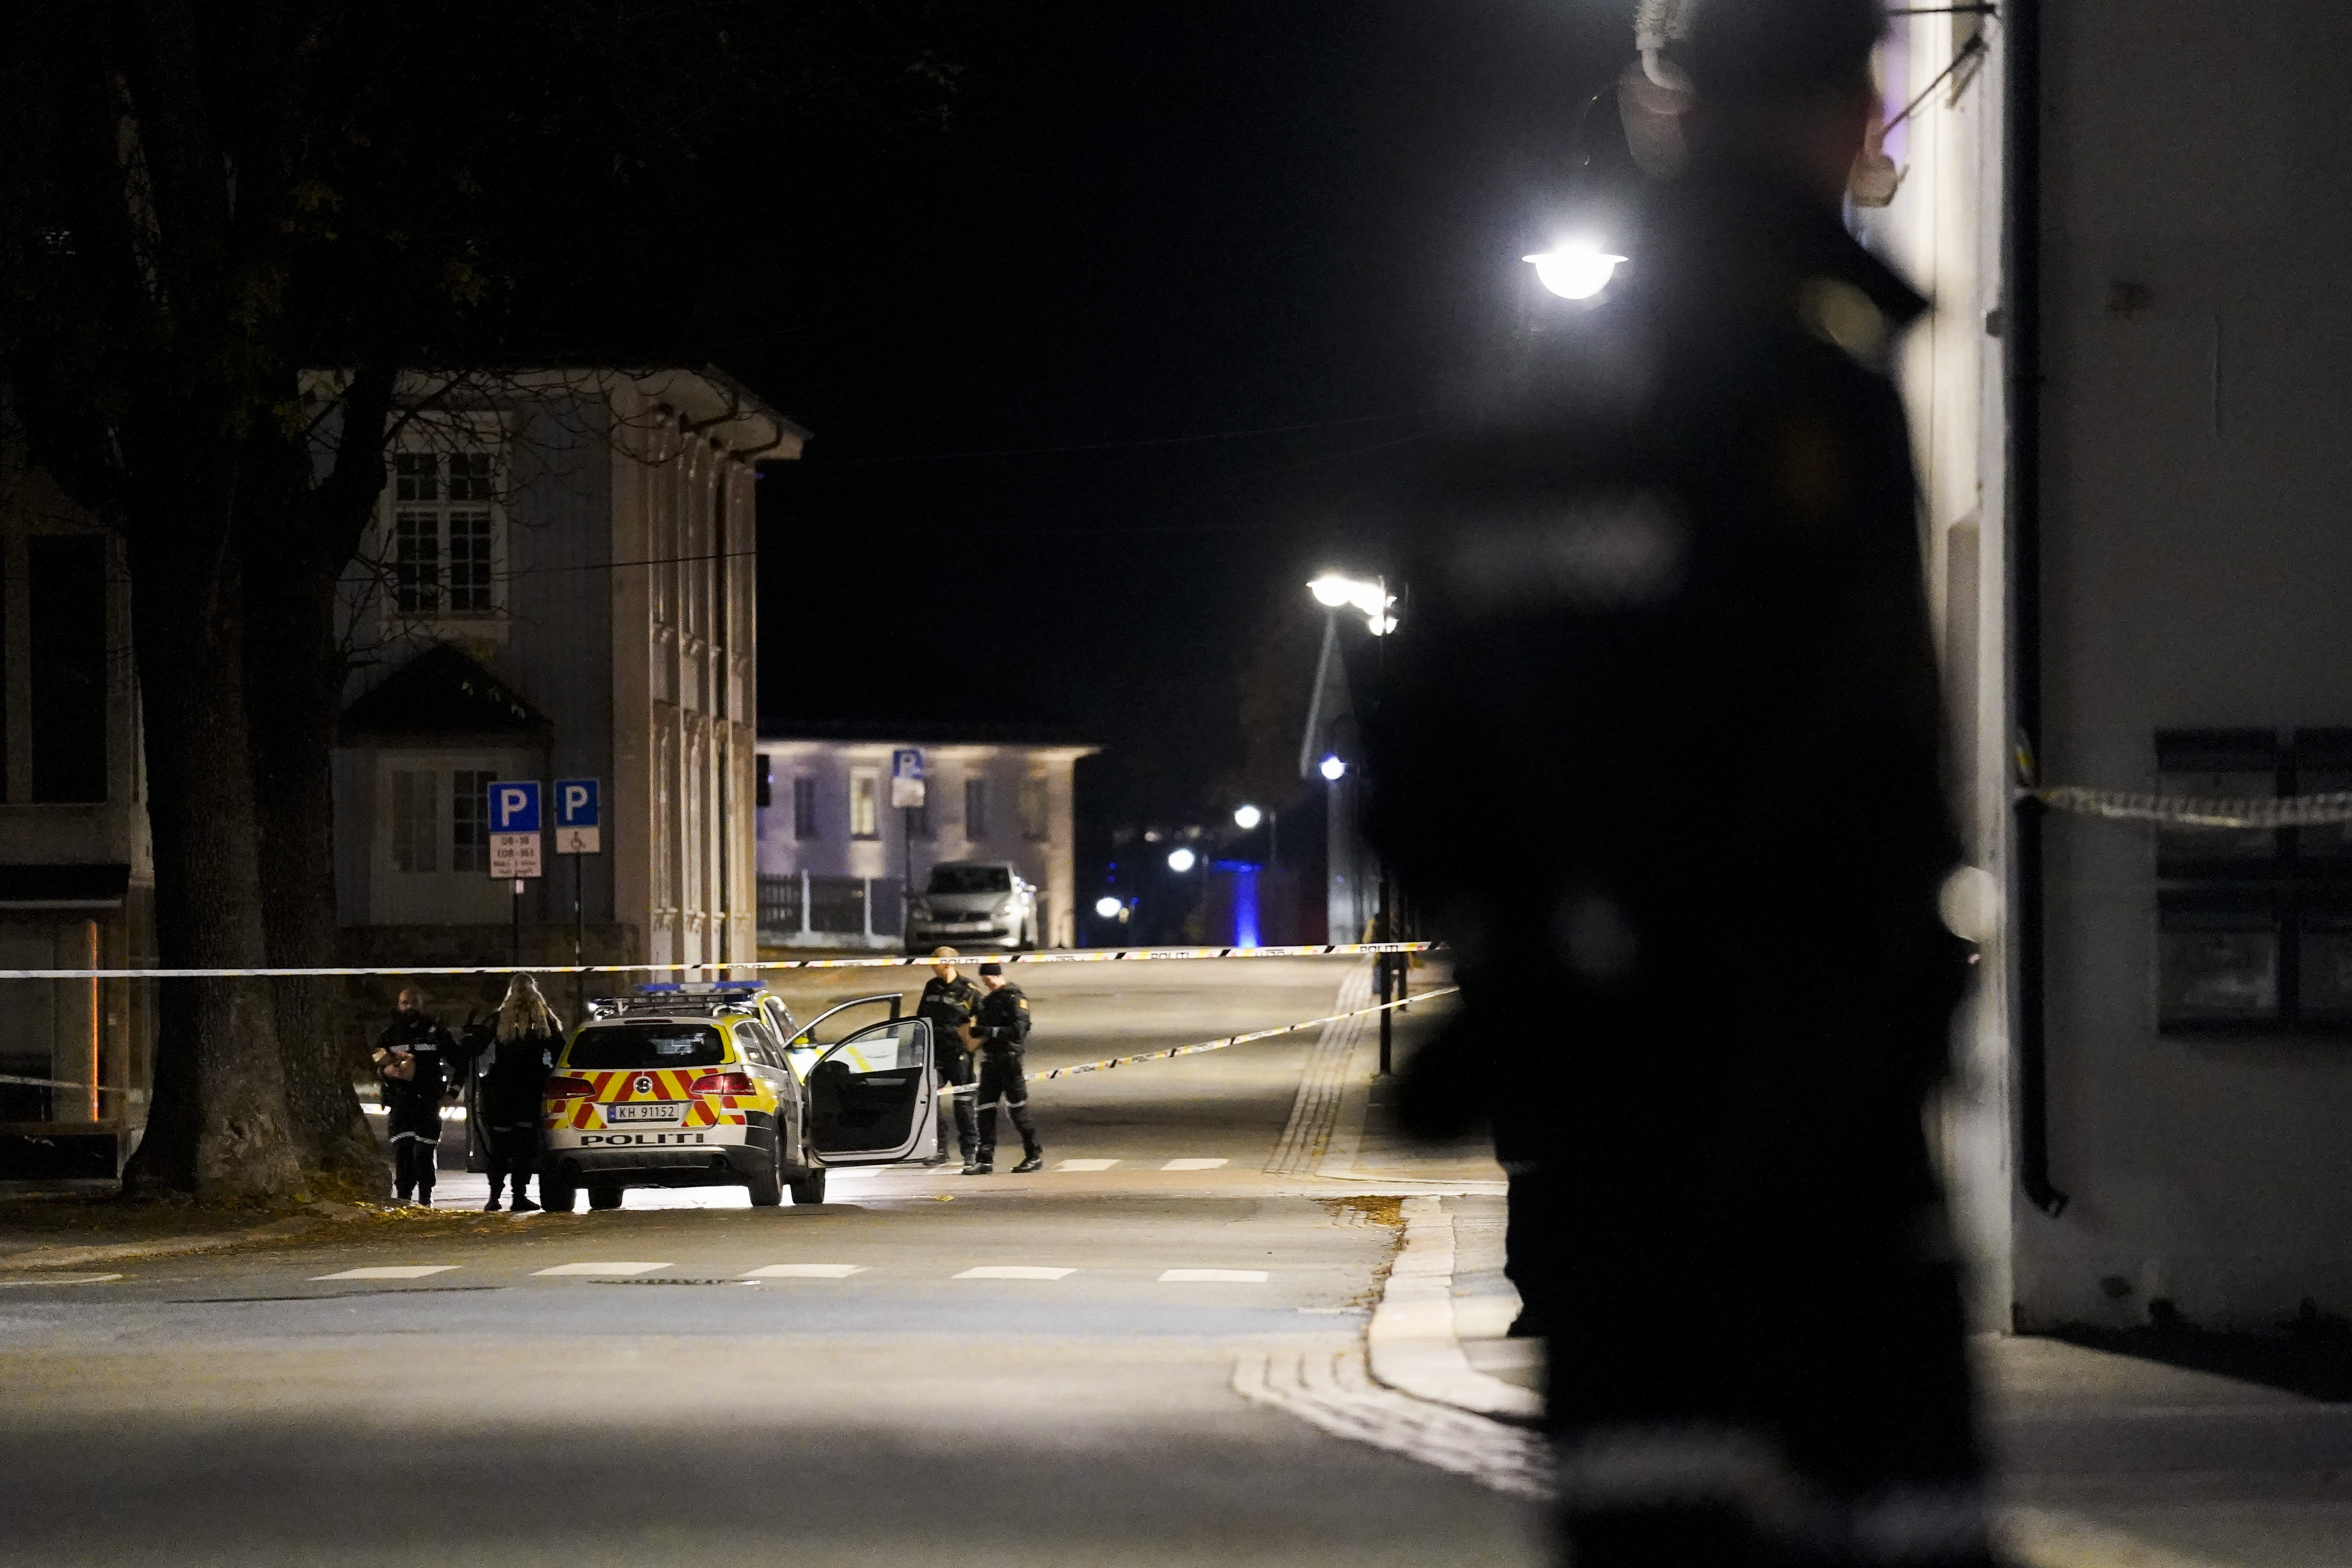 Police at the scene after an attack in Kongsberg, Norway, on Oct. 13, 2021.